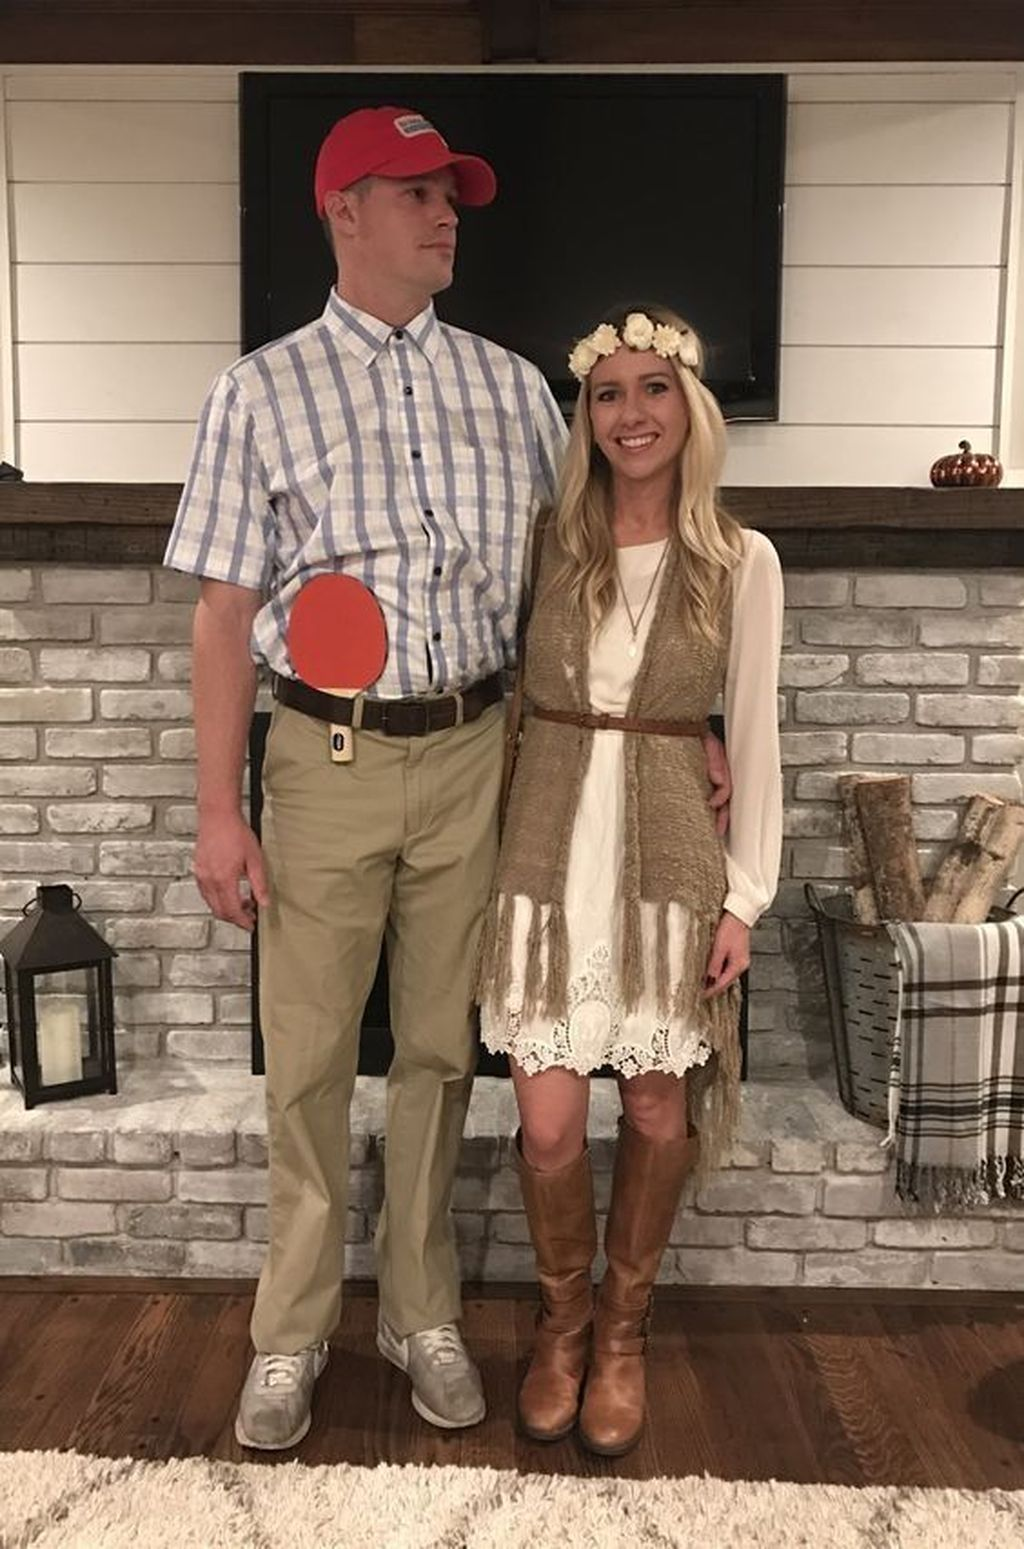 50 Catchy Couple Costumes Ideas For Halloween #funnyhalloweencostumes